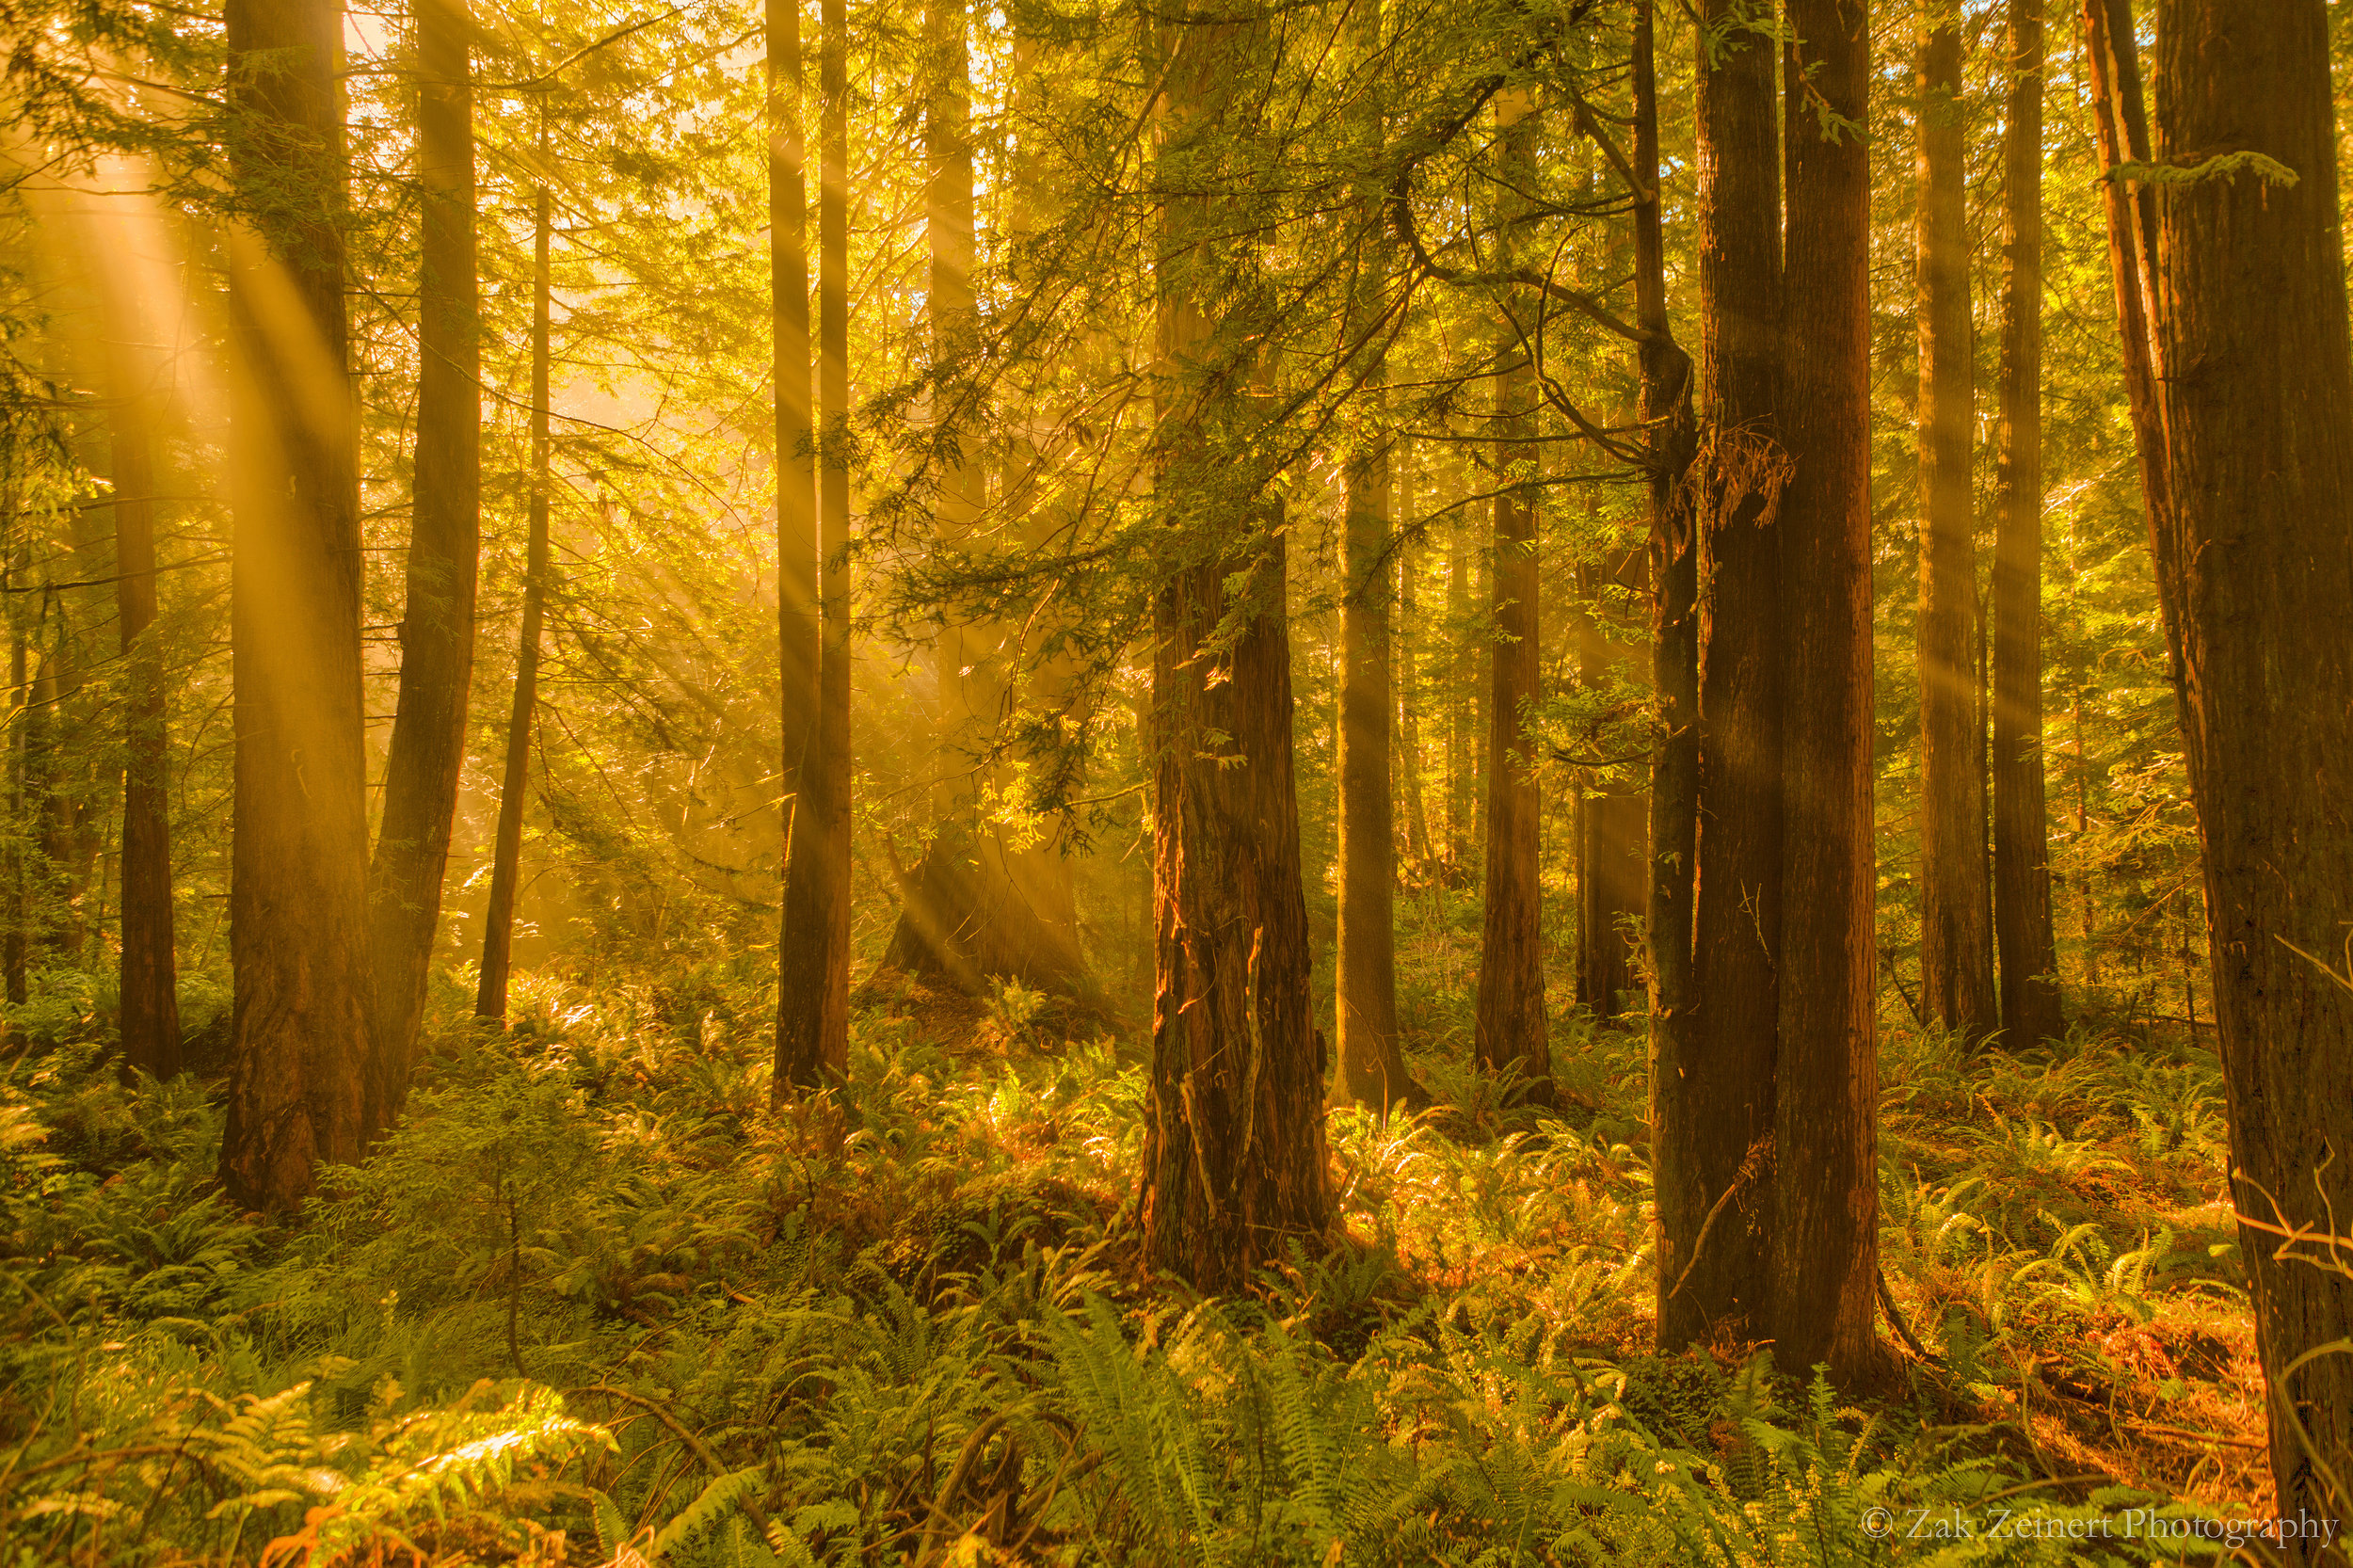 Redwoods near Jedediah Smith Redwood State Park circa 2015.  Had to copy this from my website as the original was lost in the hard drive crash. Taken on the Howland Hill Road.